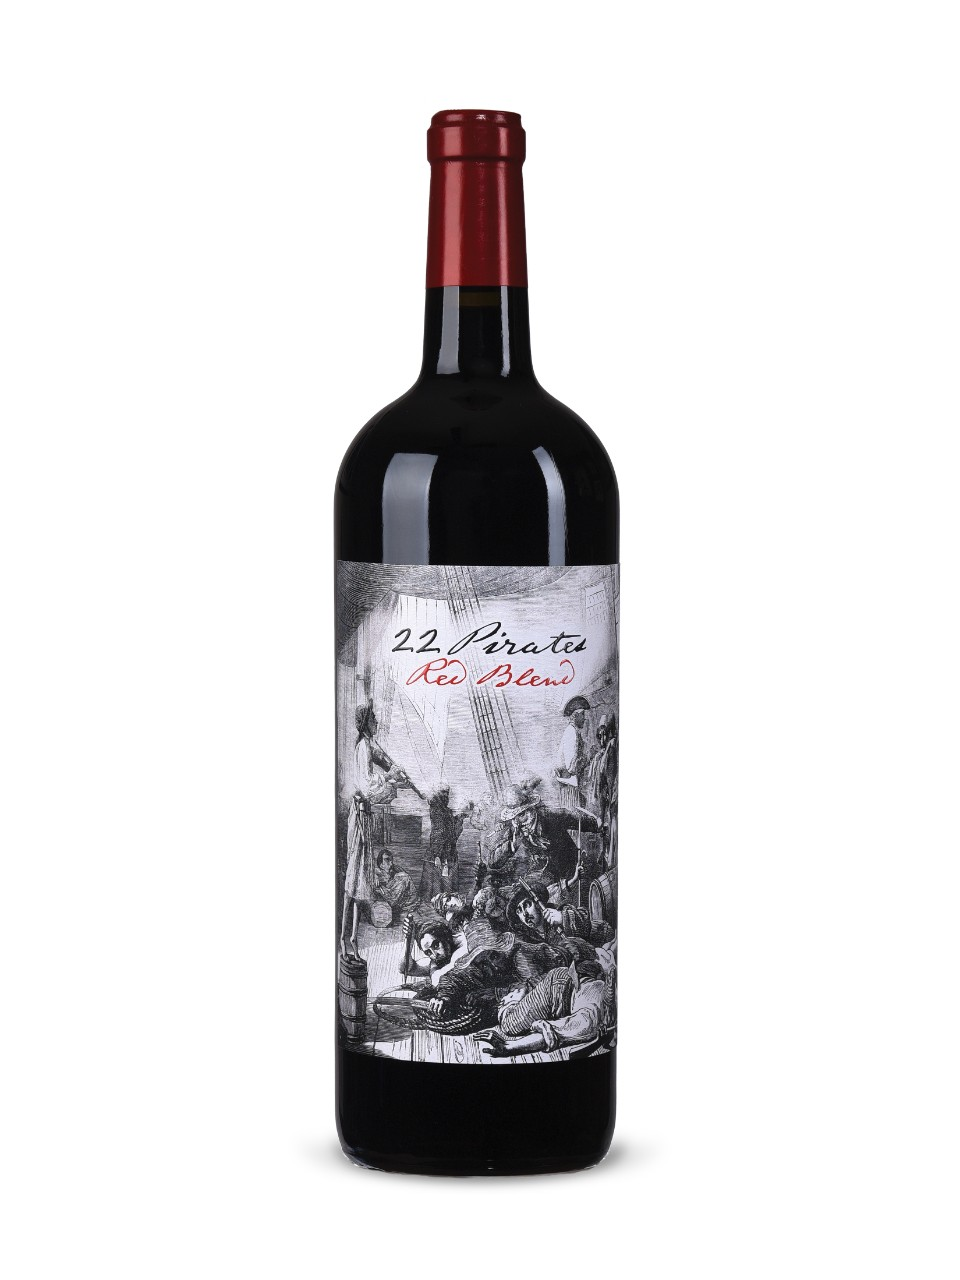 Clos La Chance 22 Pirates Red Blend 2017 from LCBO